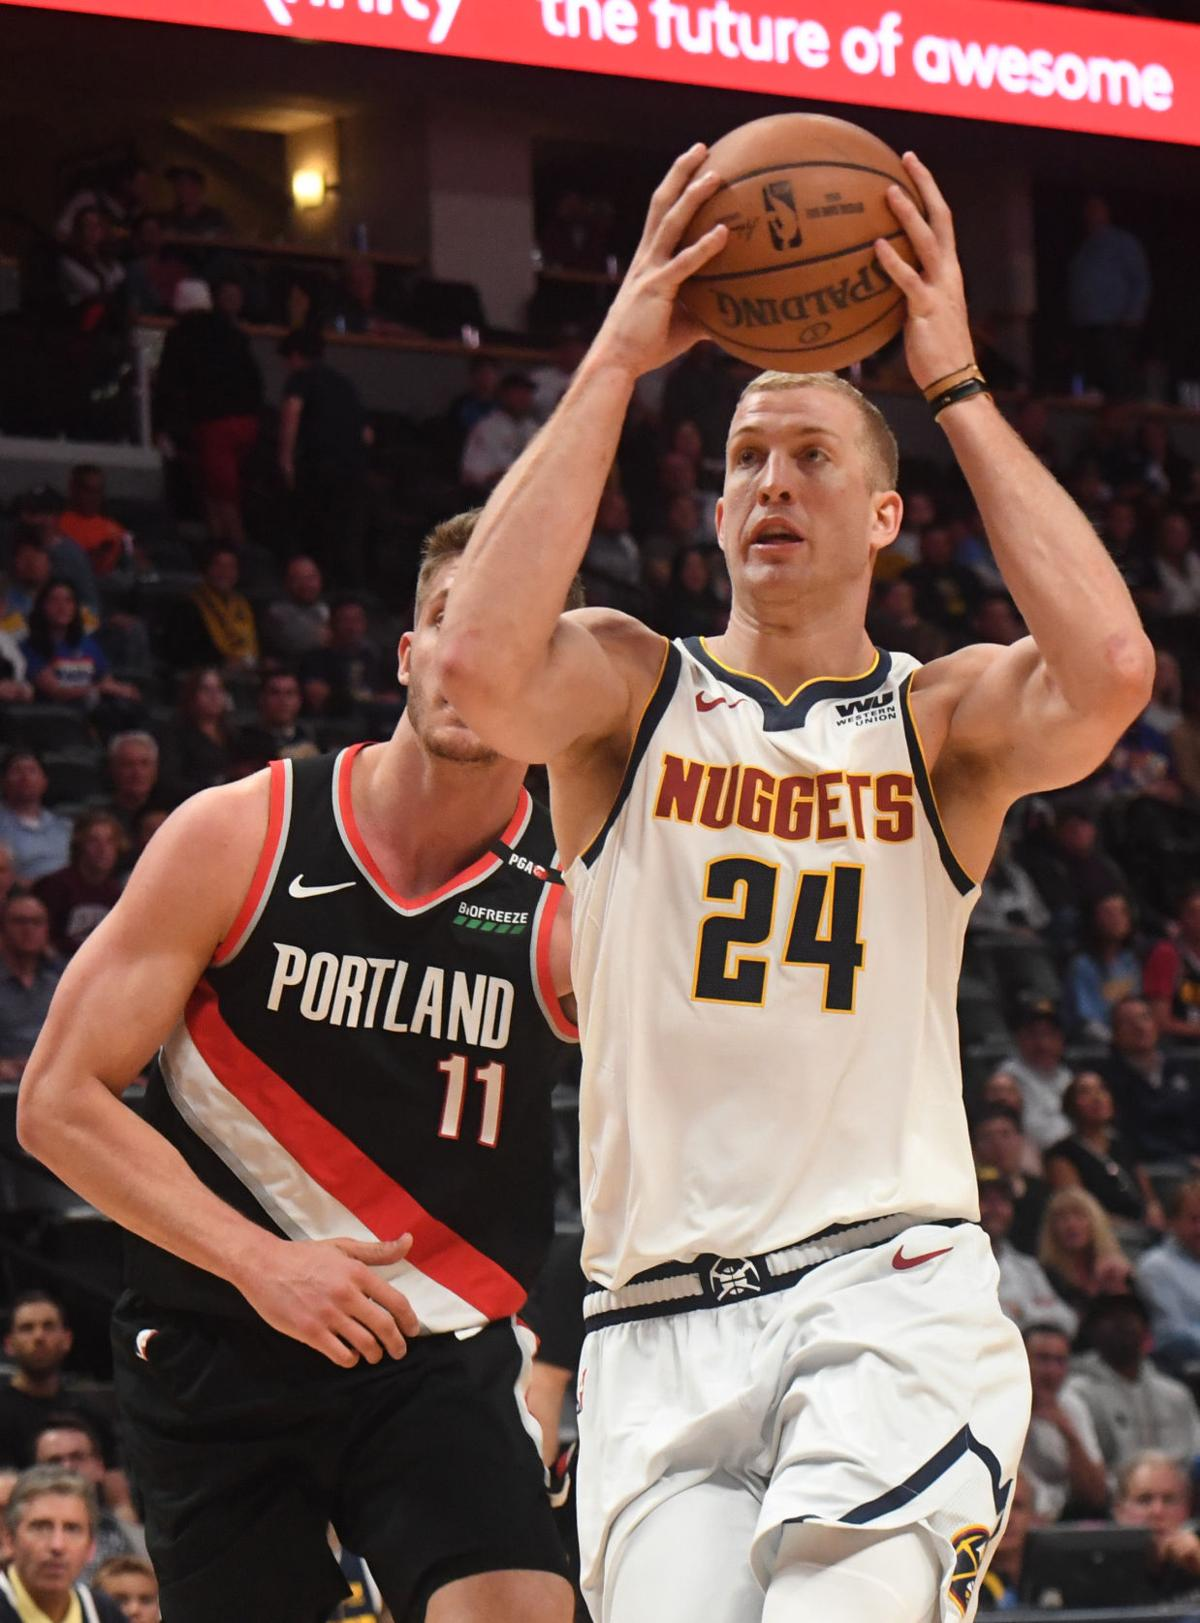 Nuggets Blazers Game 5